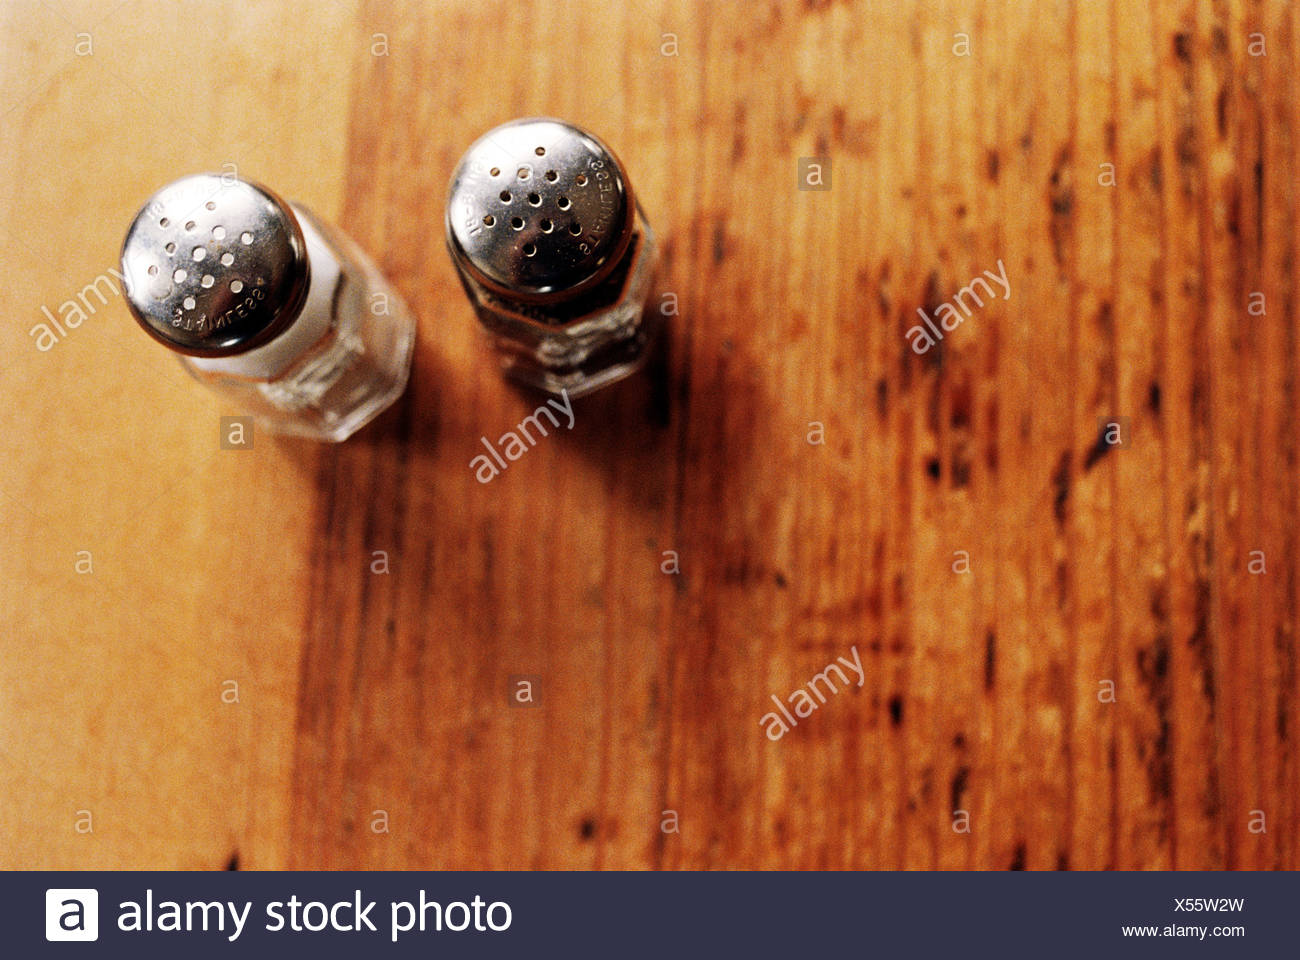 Salt and pepper pots on wooden table Stock Photo